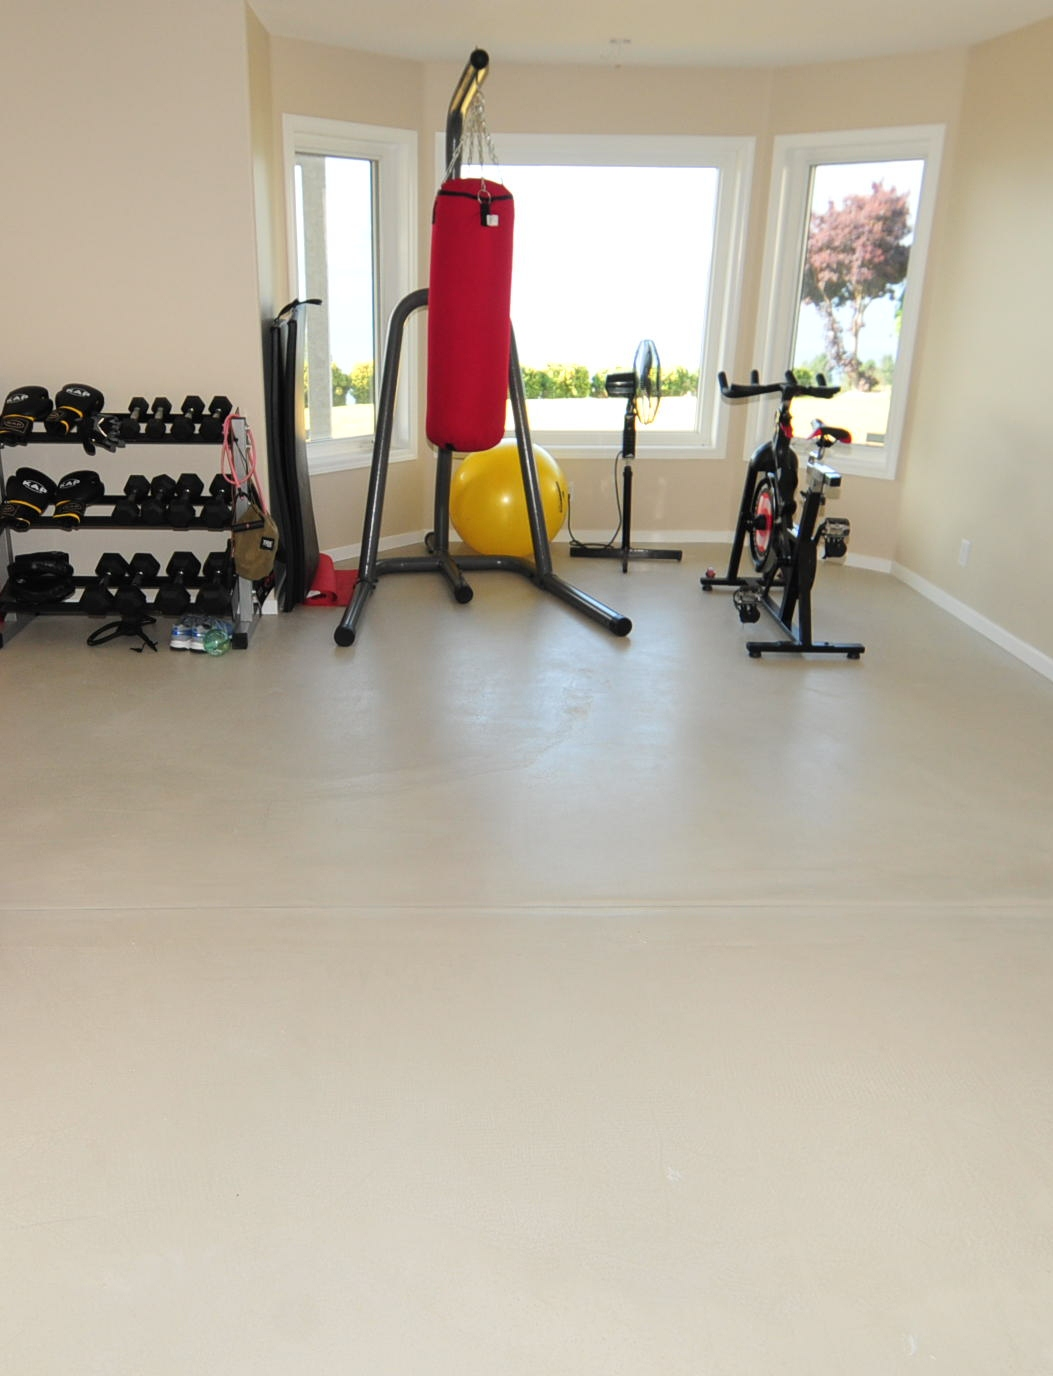 A Concrete Floor Is The Perfect Solution To Any Home Gym Bat Garage Or E You Want Something Super Durable That Easy Maintain